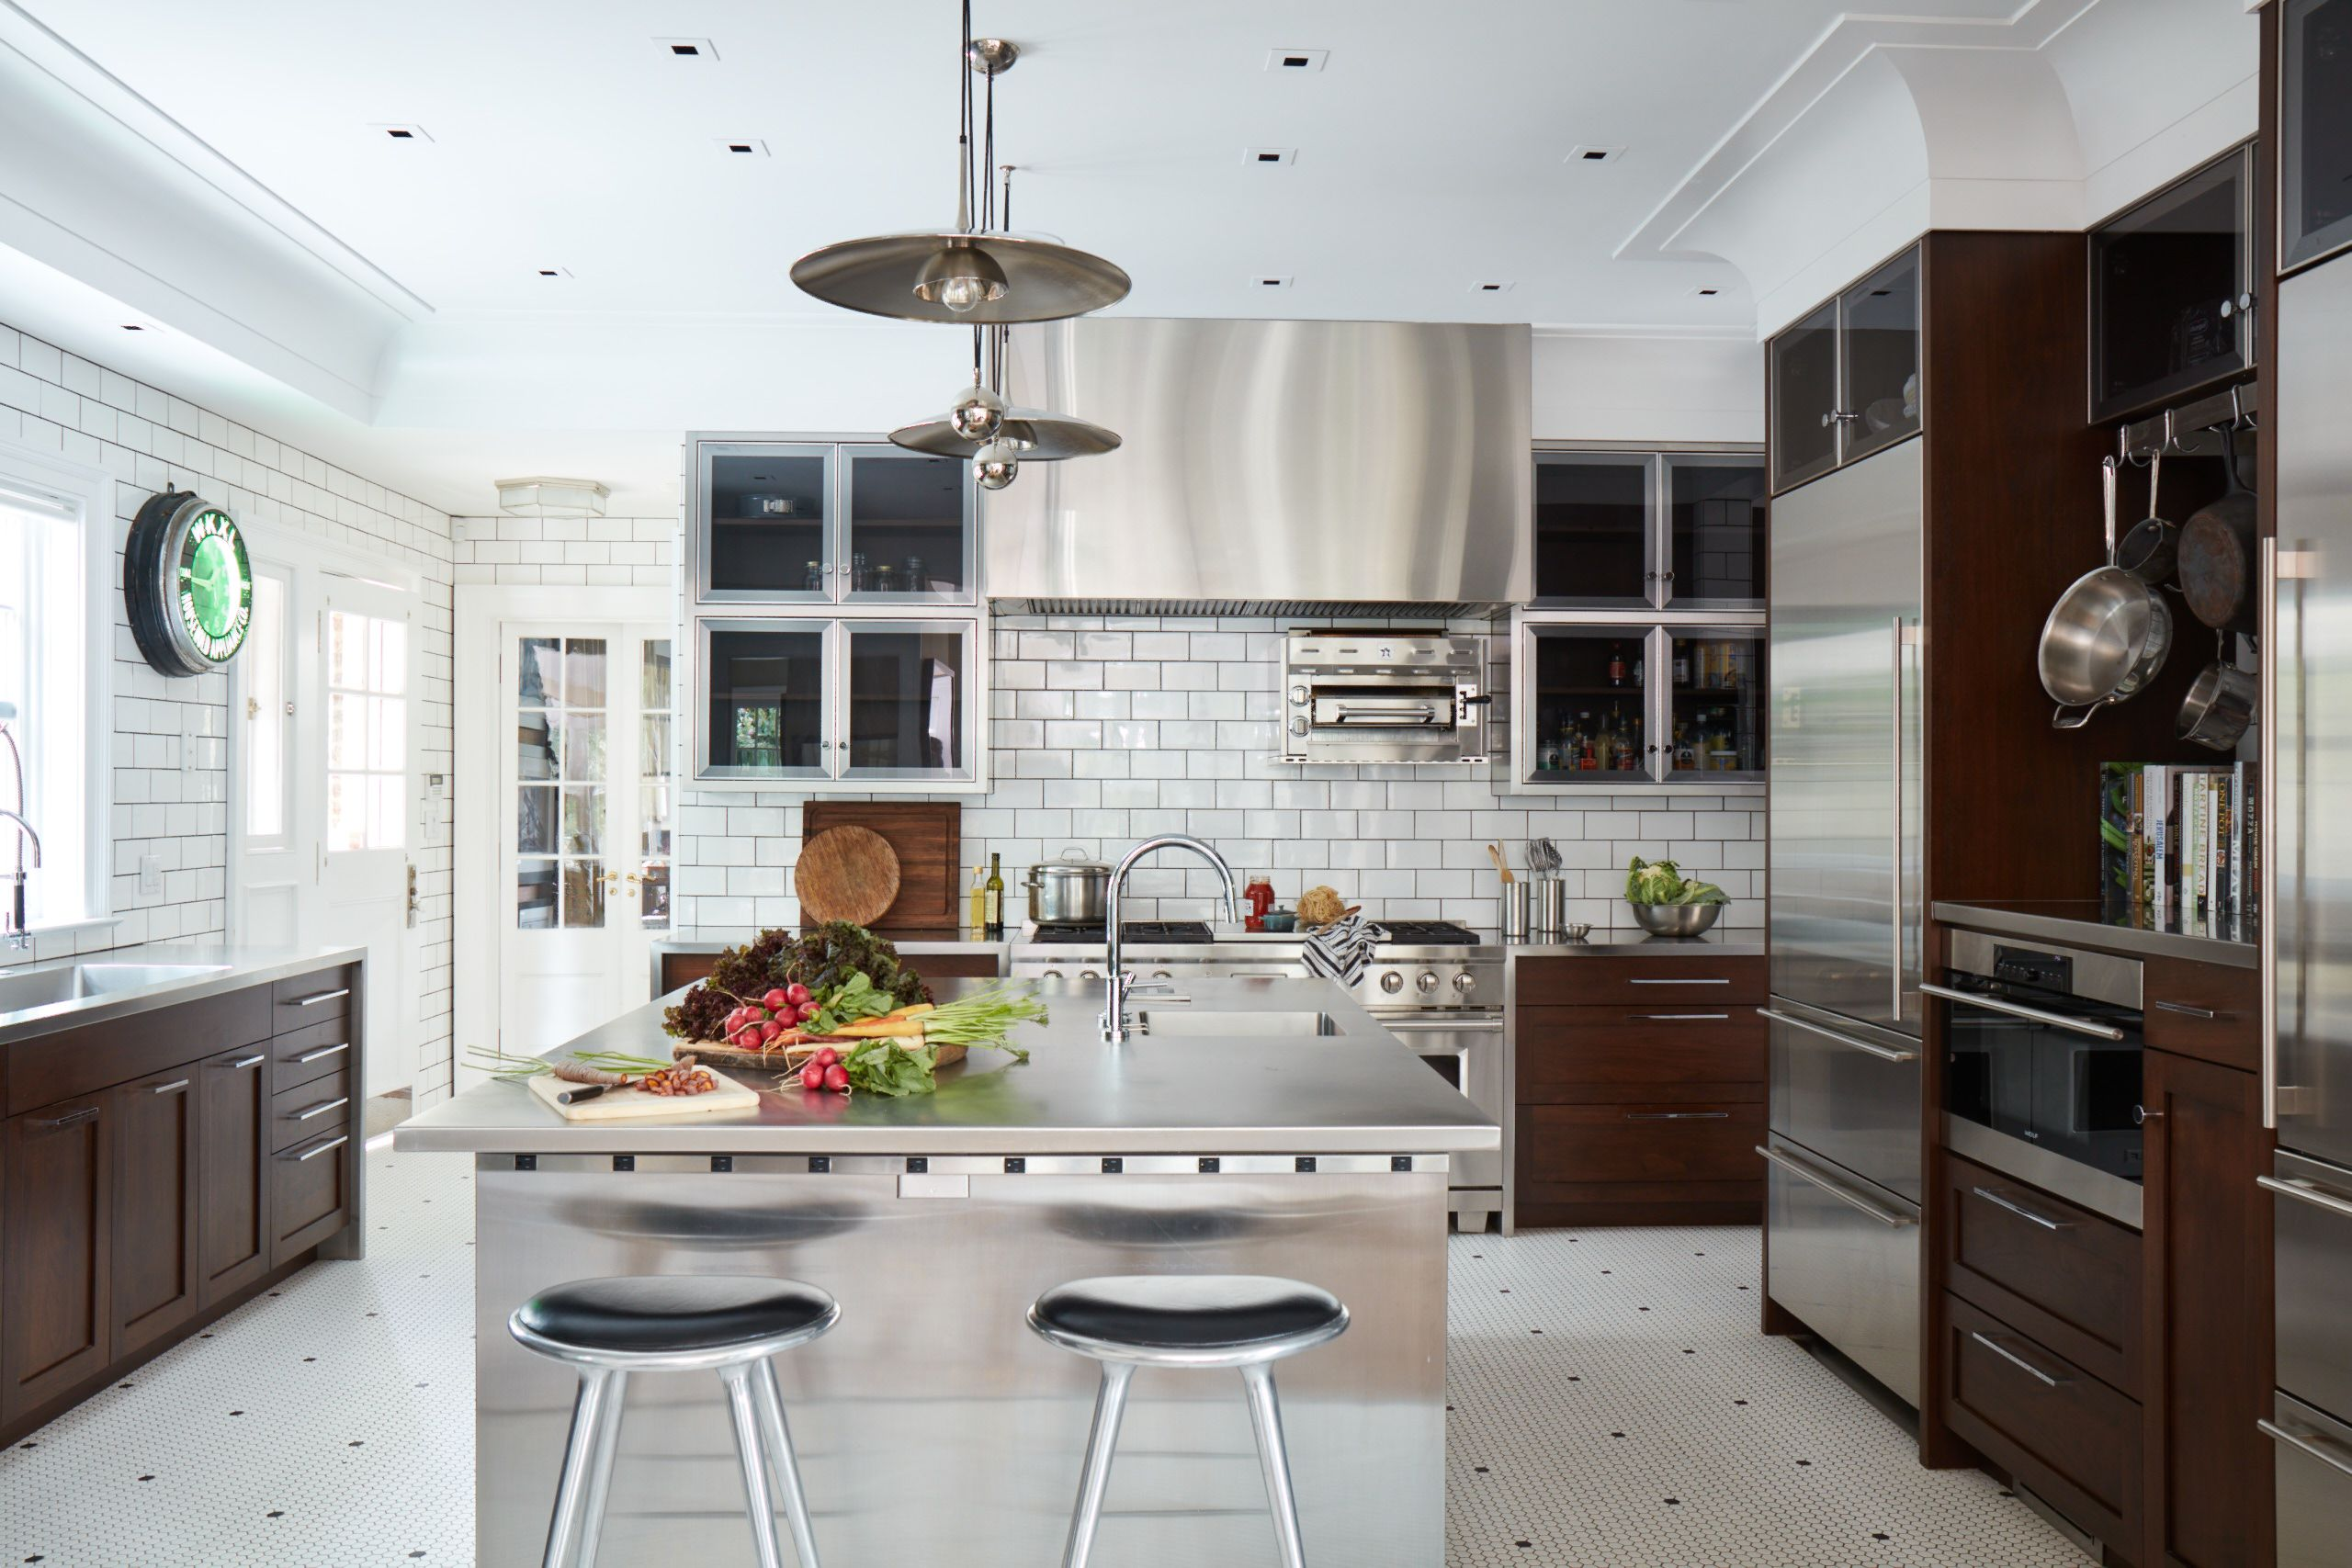 This Designer Hid a Commercial-Grade Kitchen in a Historic Home